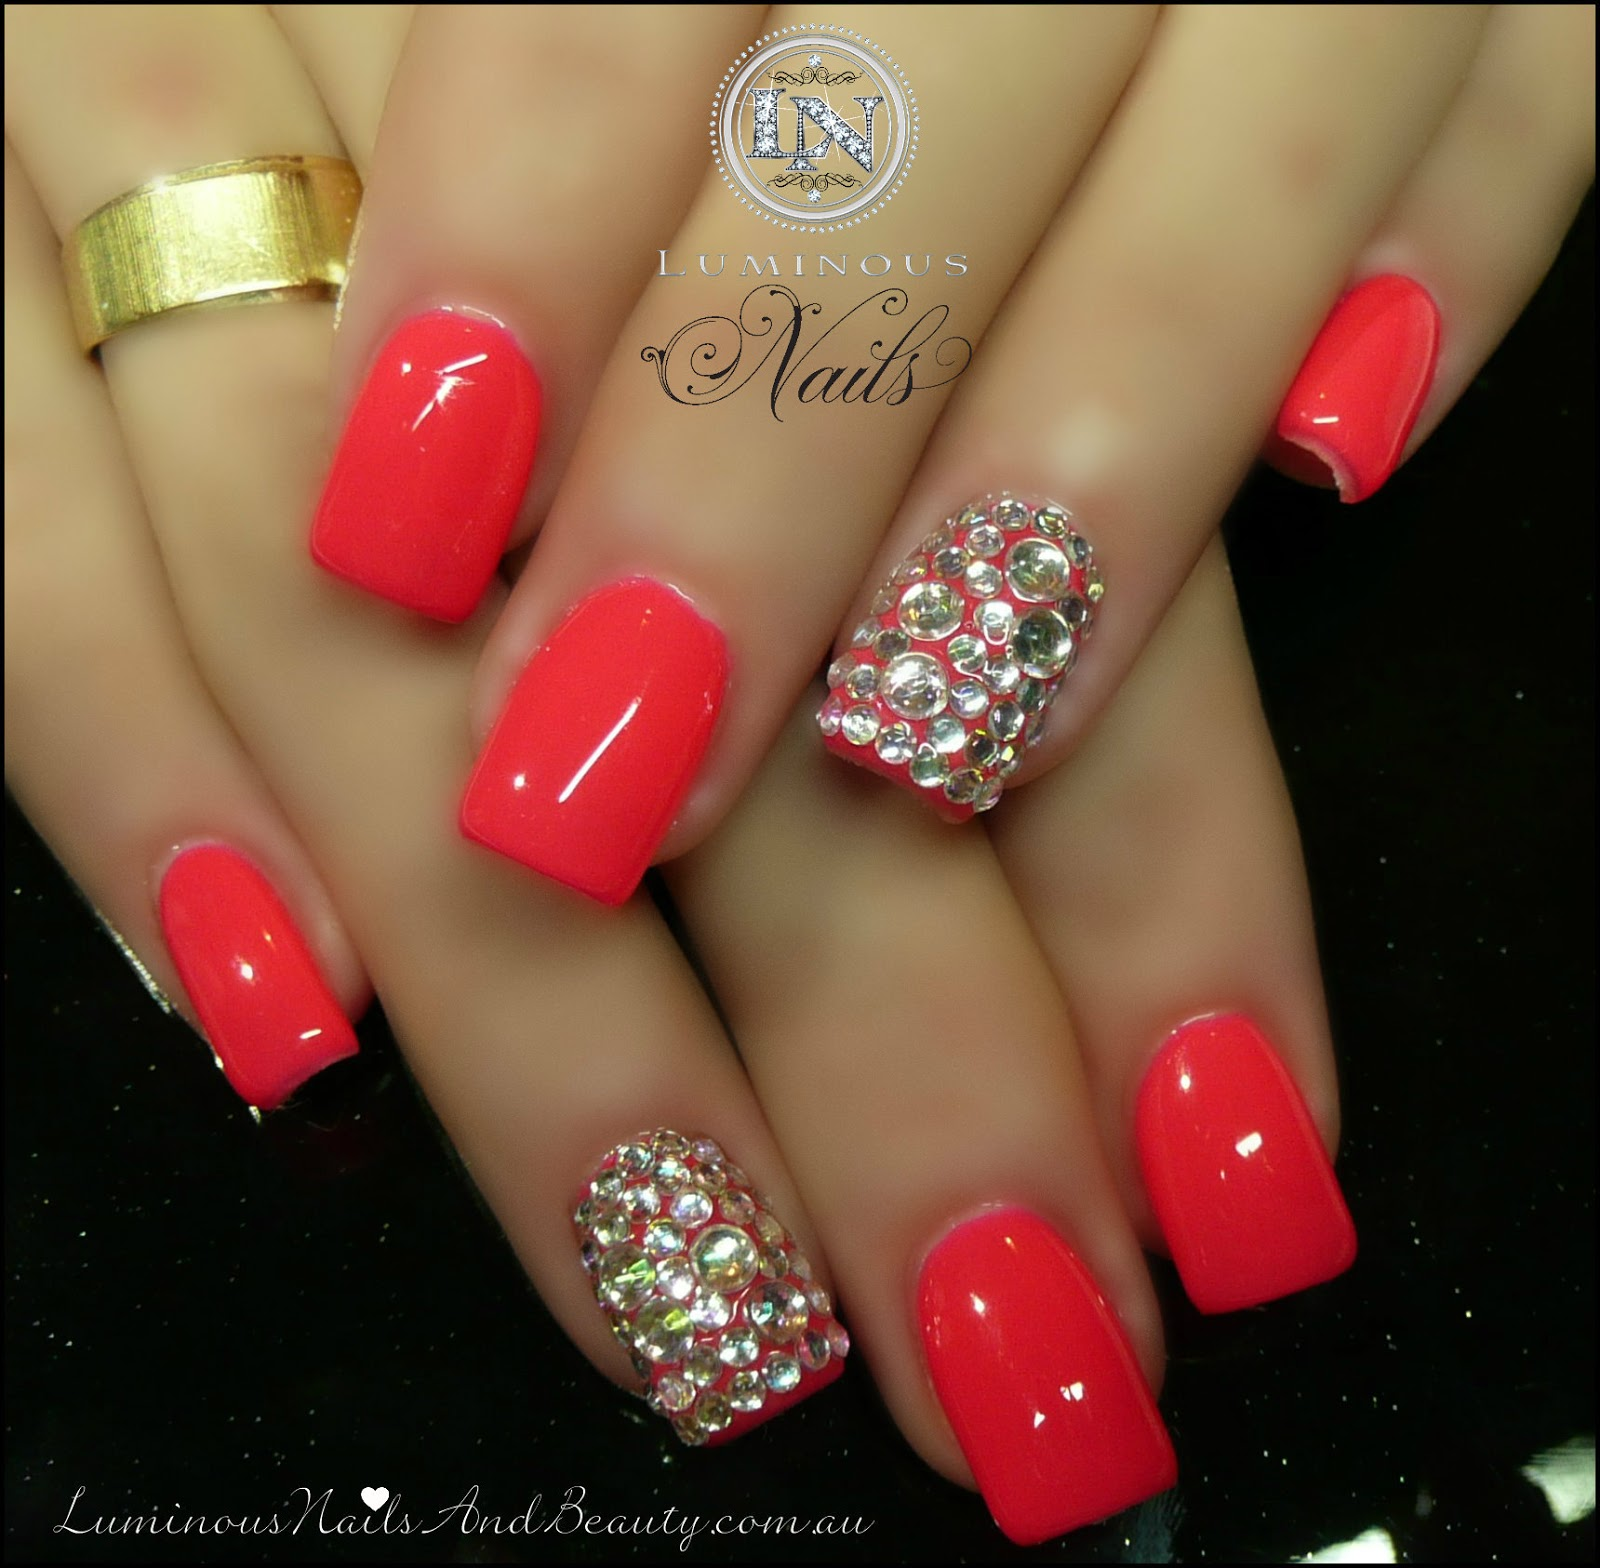 nails,+Gel+nails,+Spray+Tans,+sculptured+acrylic+with+Coral+Pink+Gel